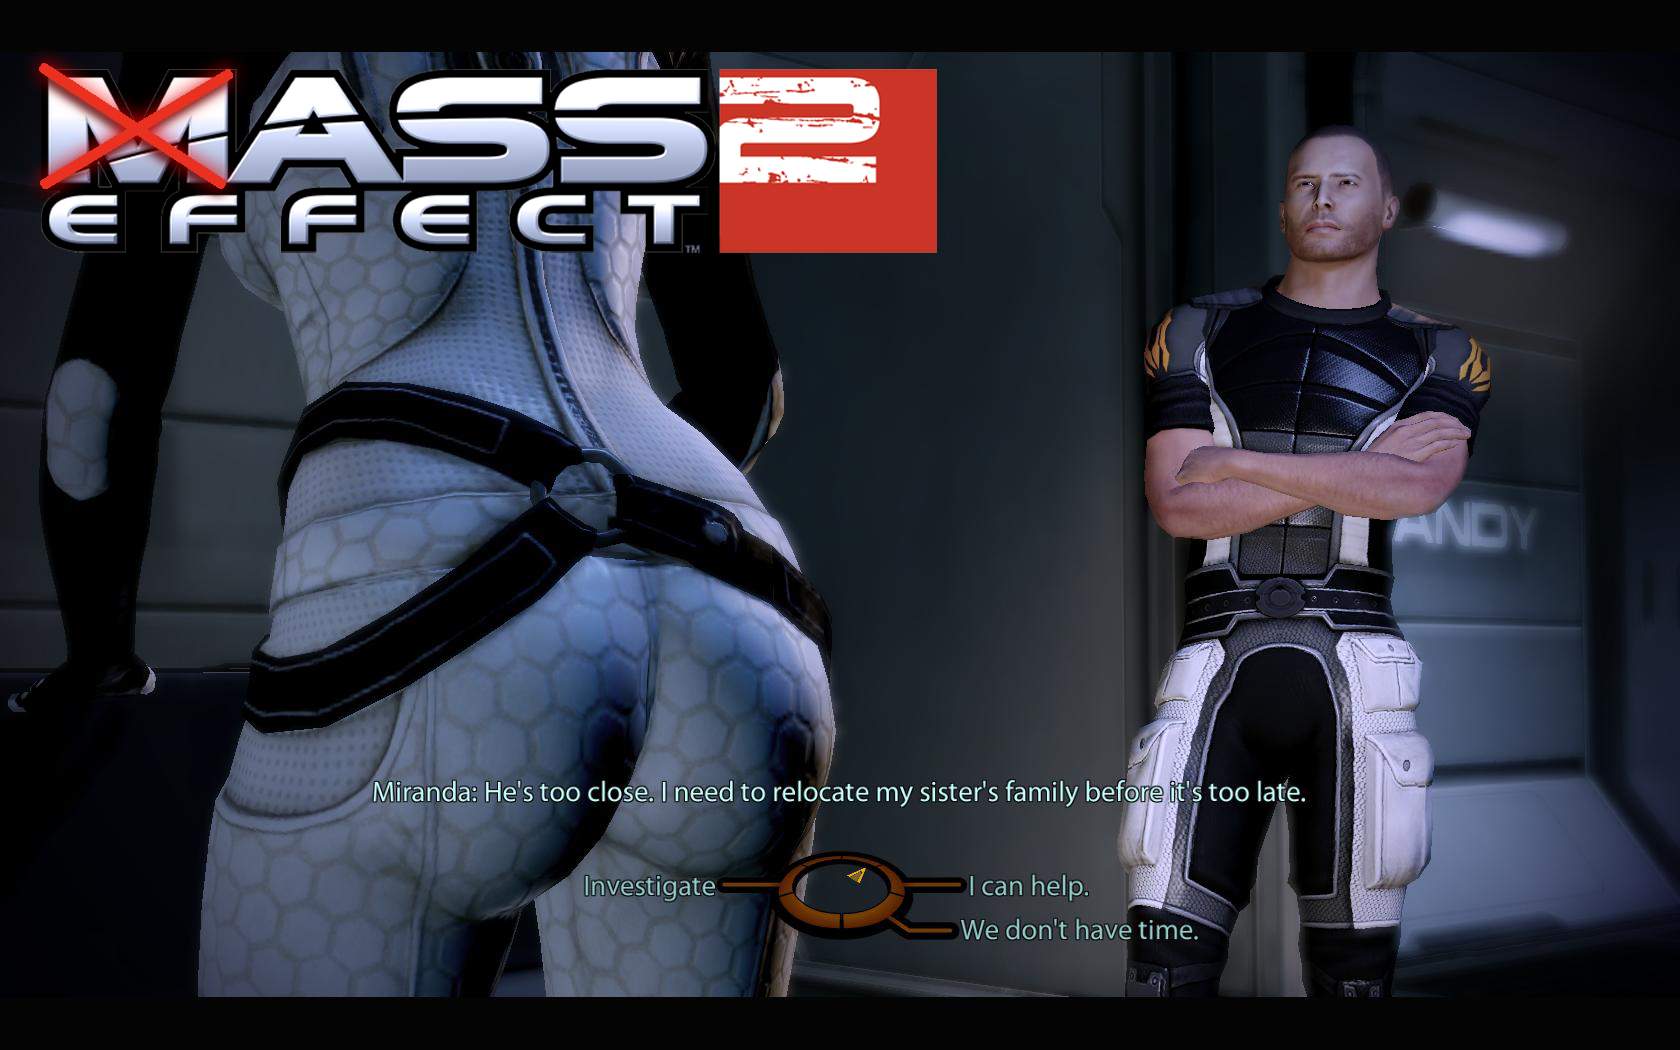 Mass effect 3 nude pack ps3 pics adult tube